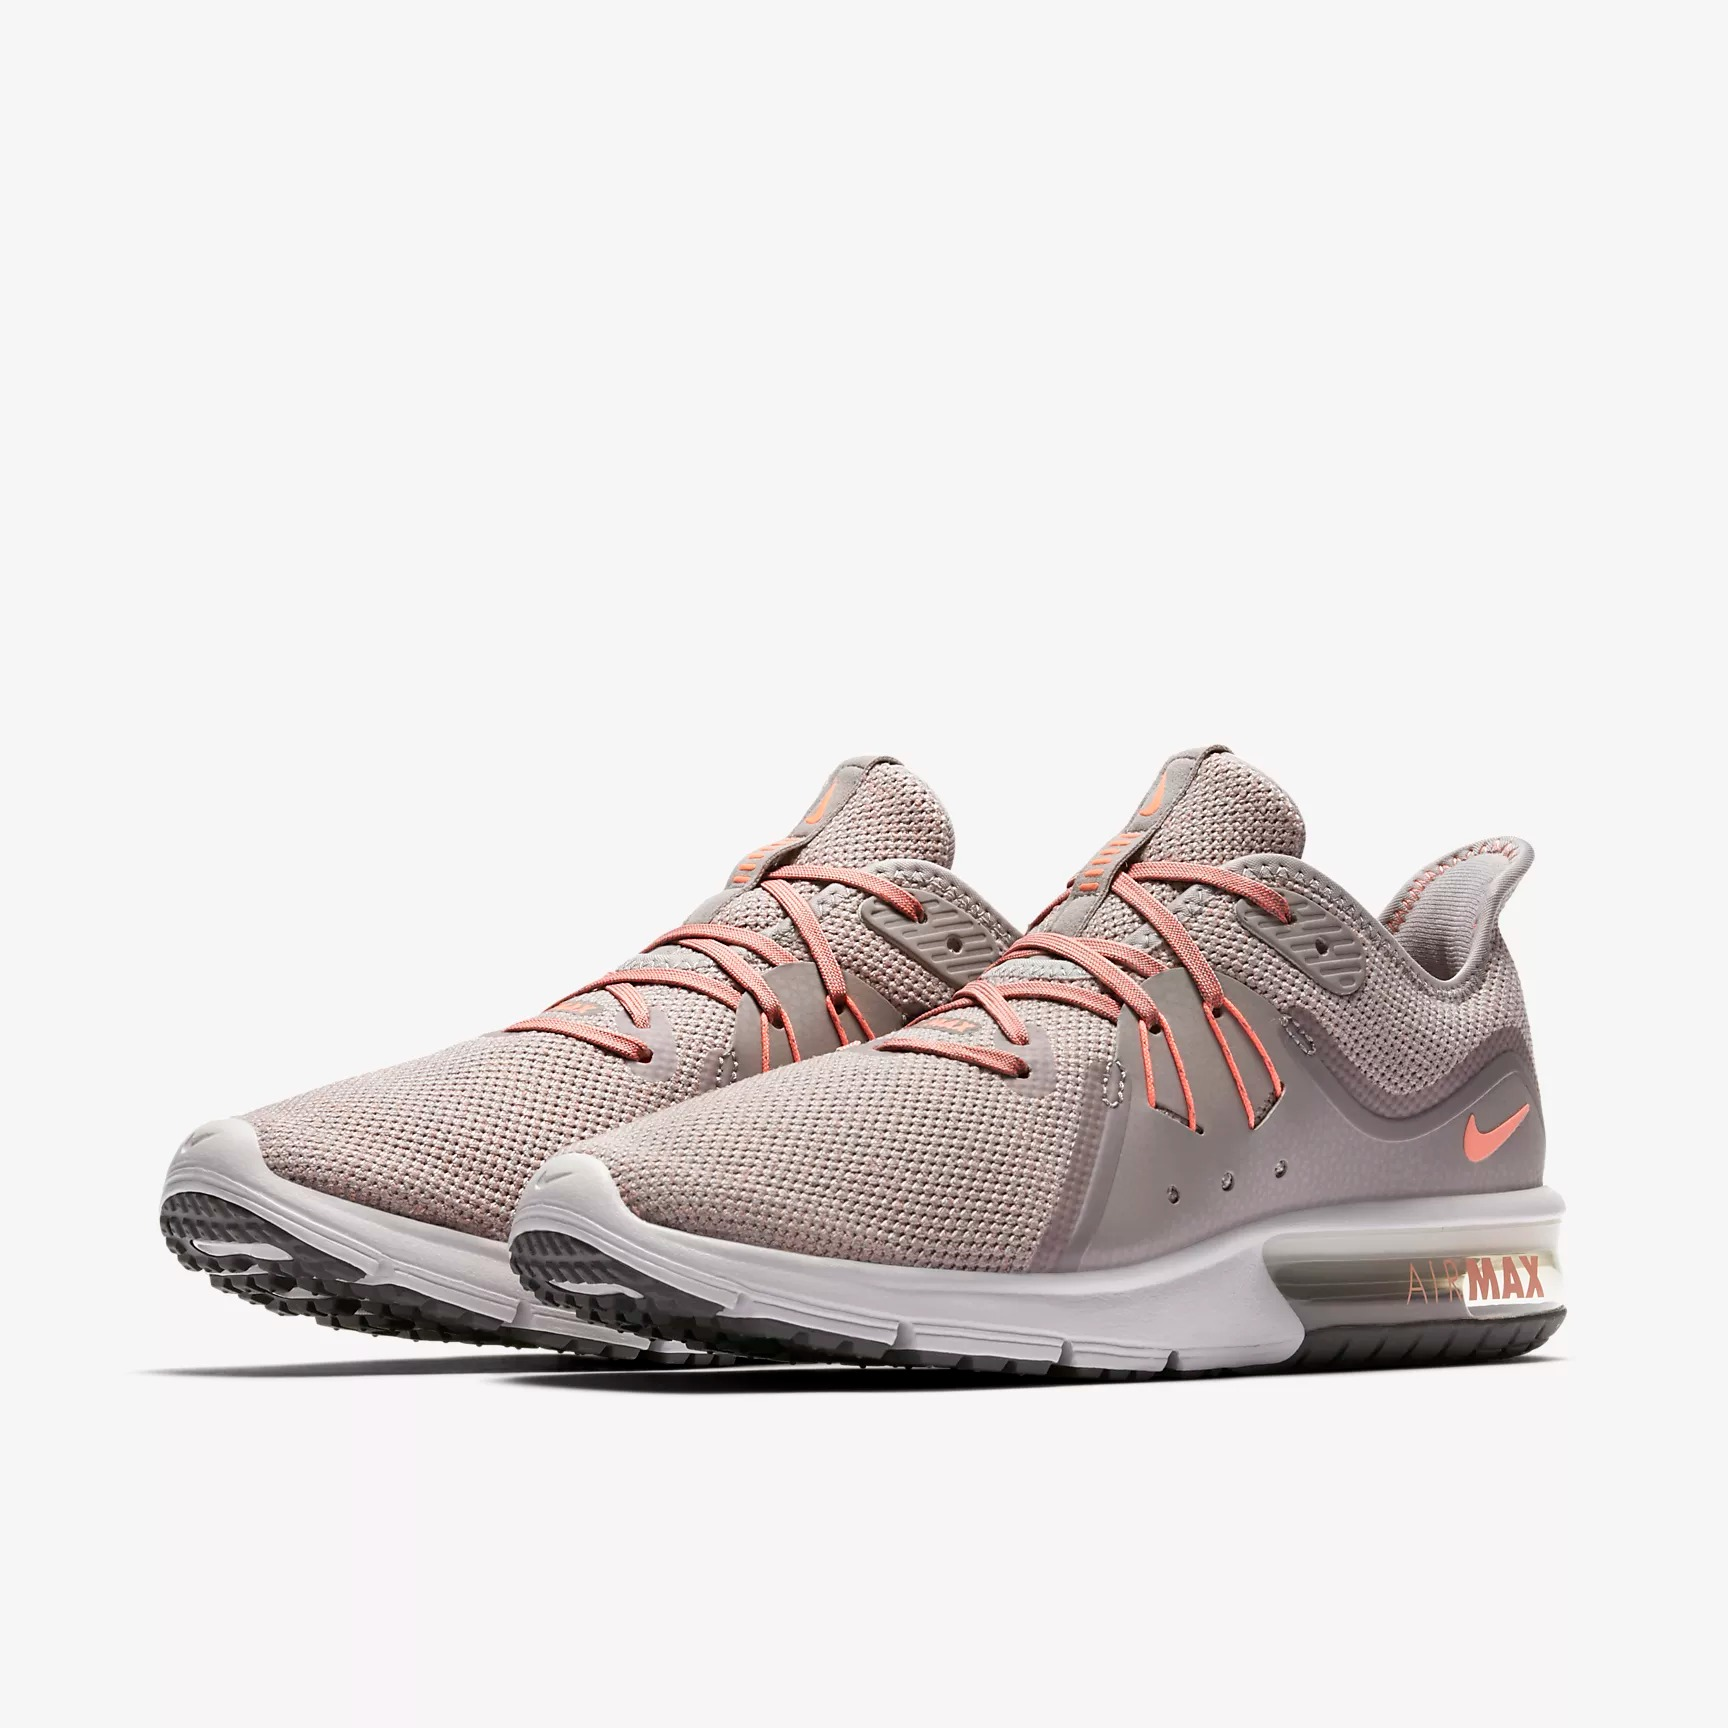 competitive price 47bf3 d52e5 Nike Wmns Air Max Sequent 3 Running Shoes - SPORT SHOES RUNNING SHOES -  Superfanas.lt